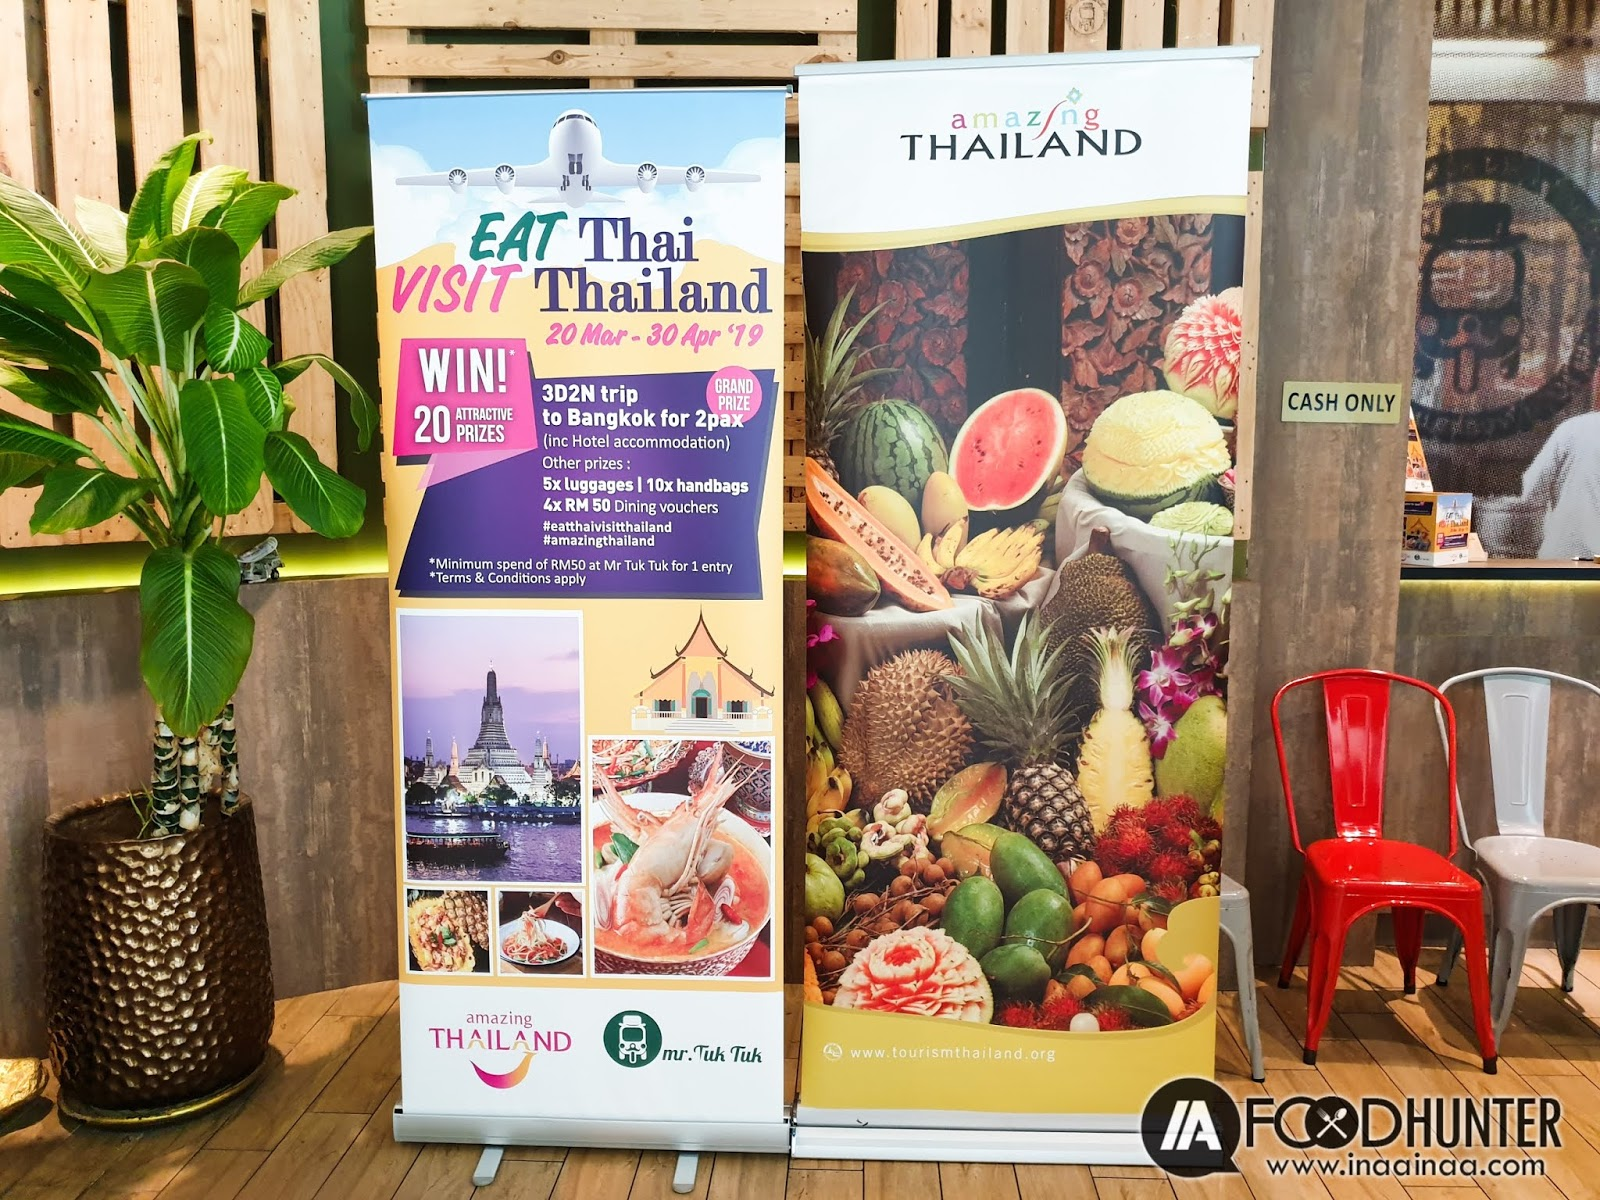 EAT THAI, VISIT THAILAND 2019- IAFOODHUNTER